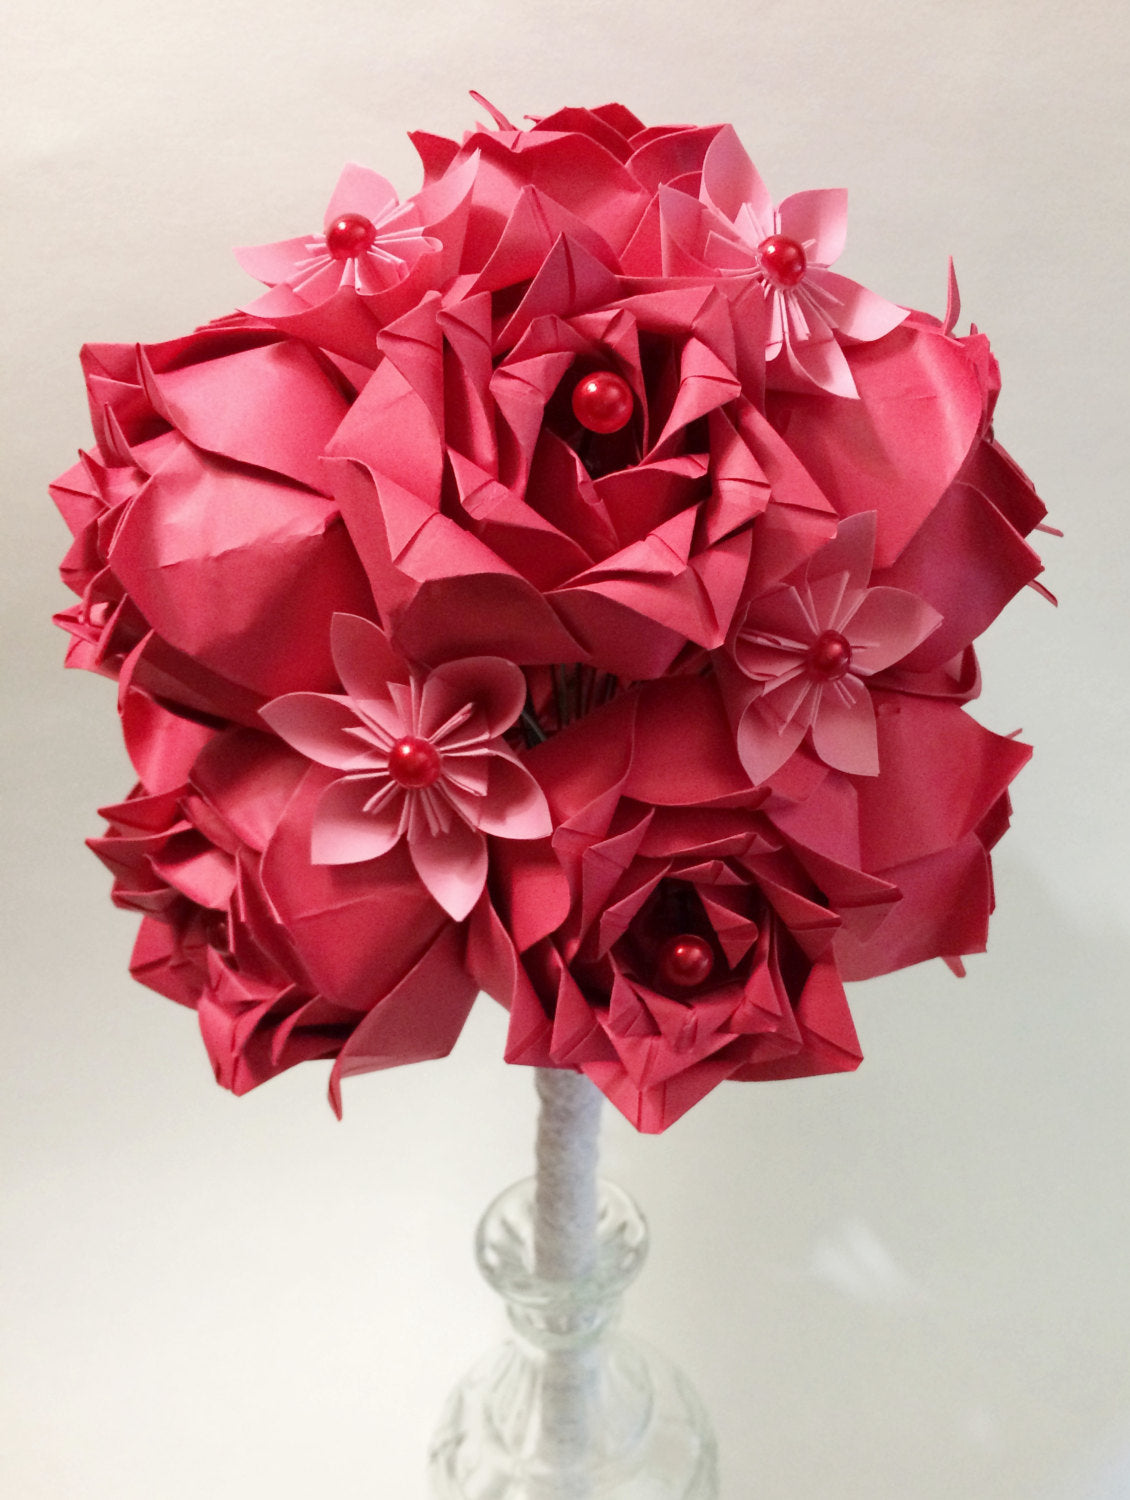 Dozen Deluxe Paper Roses- handmade paper flowers, first anniversary gift, red roses, wedding bouquet, perfect for her, handmade rose, love